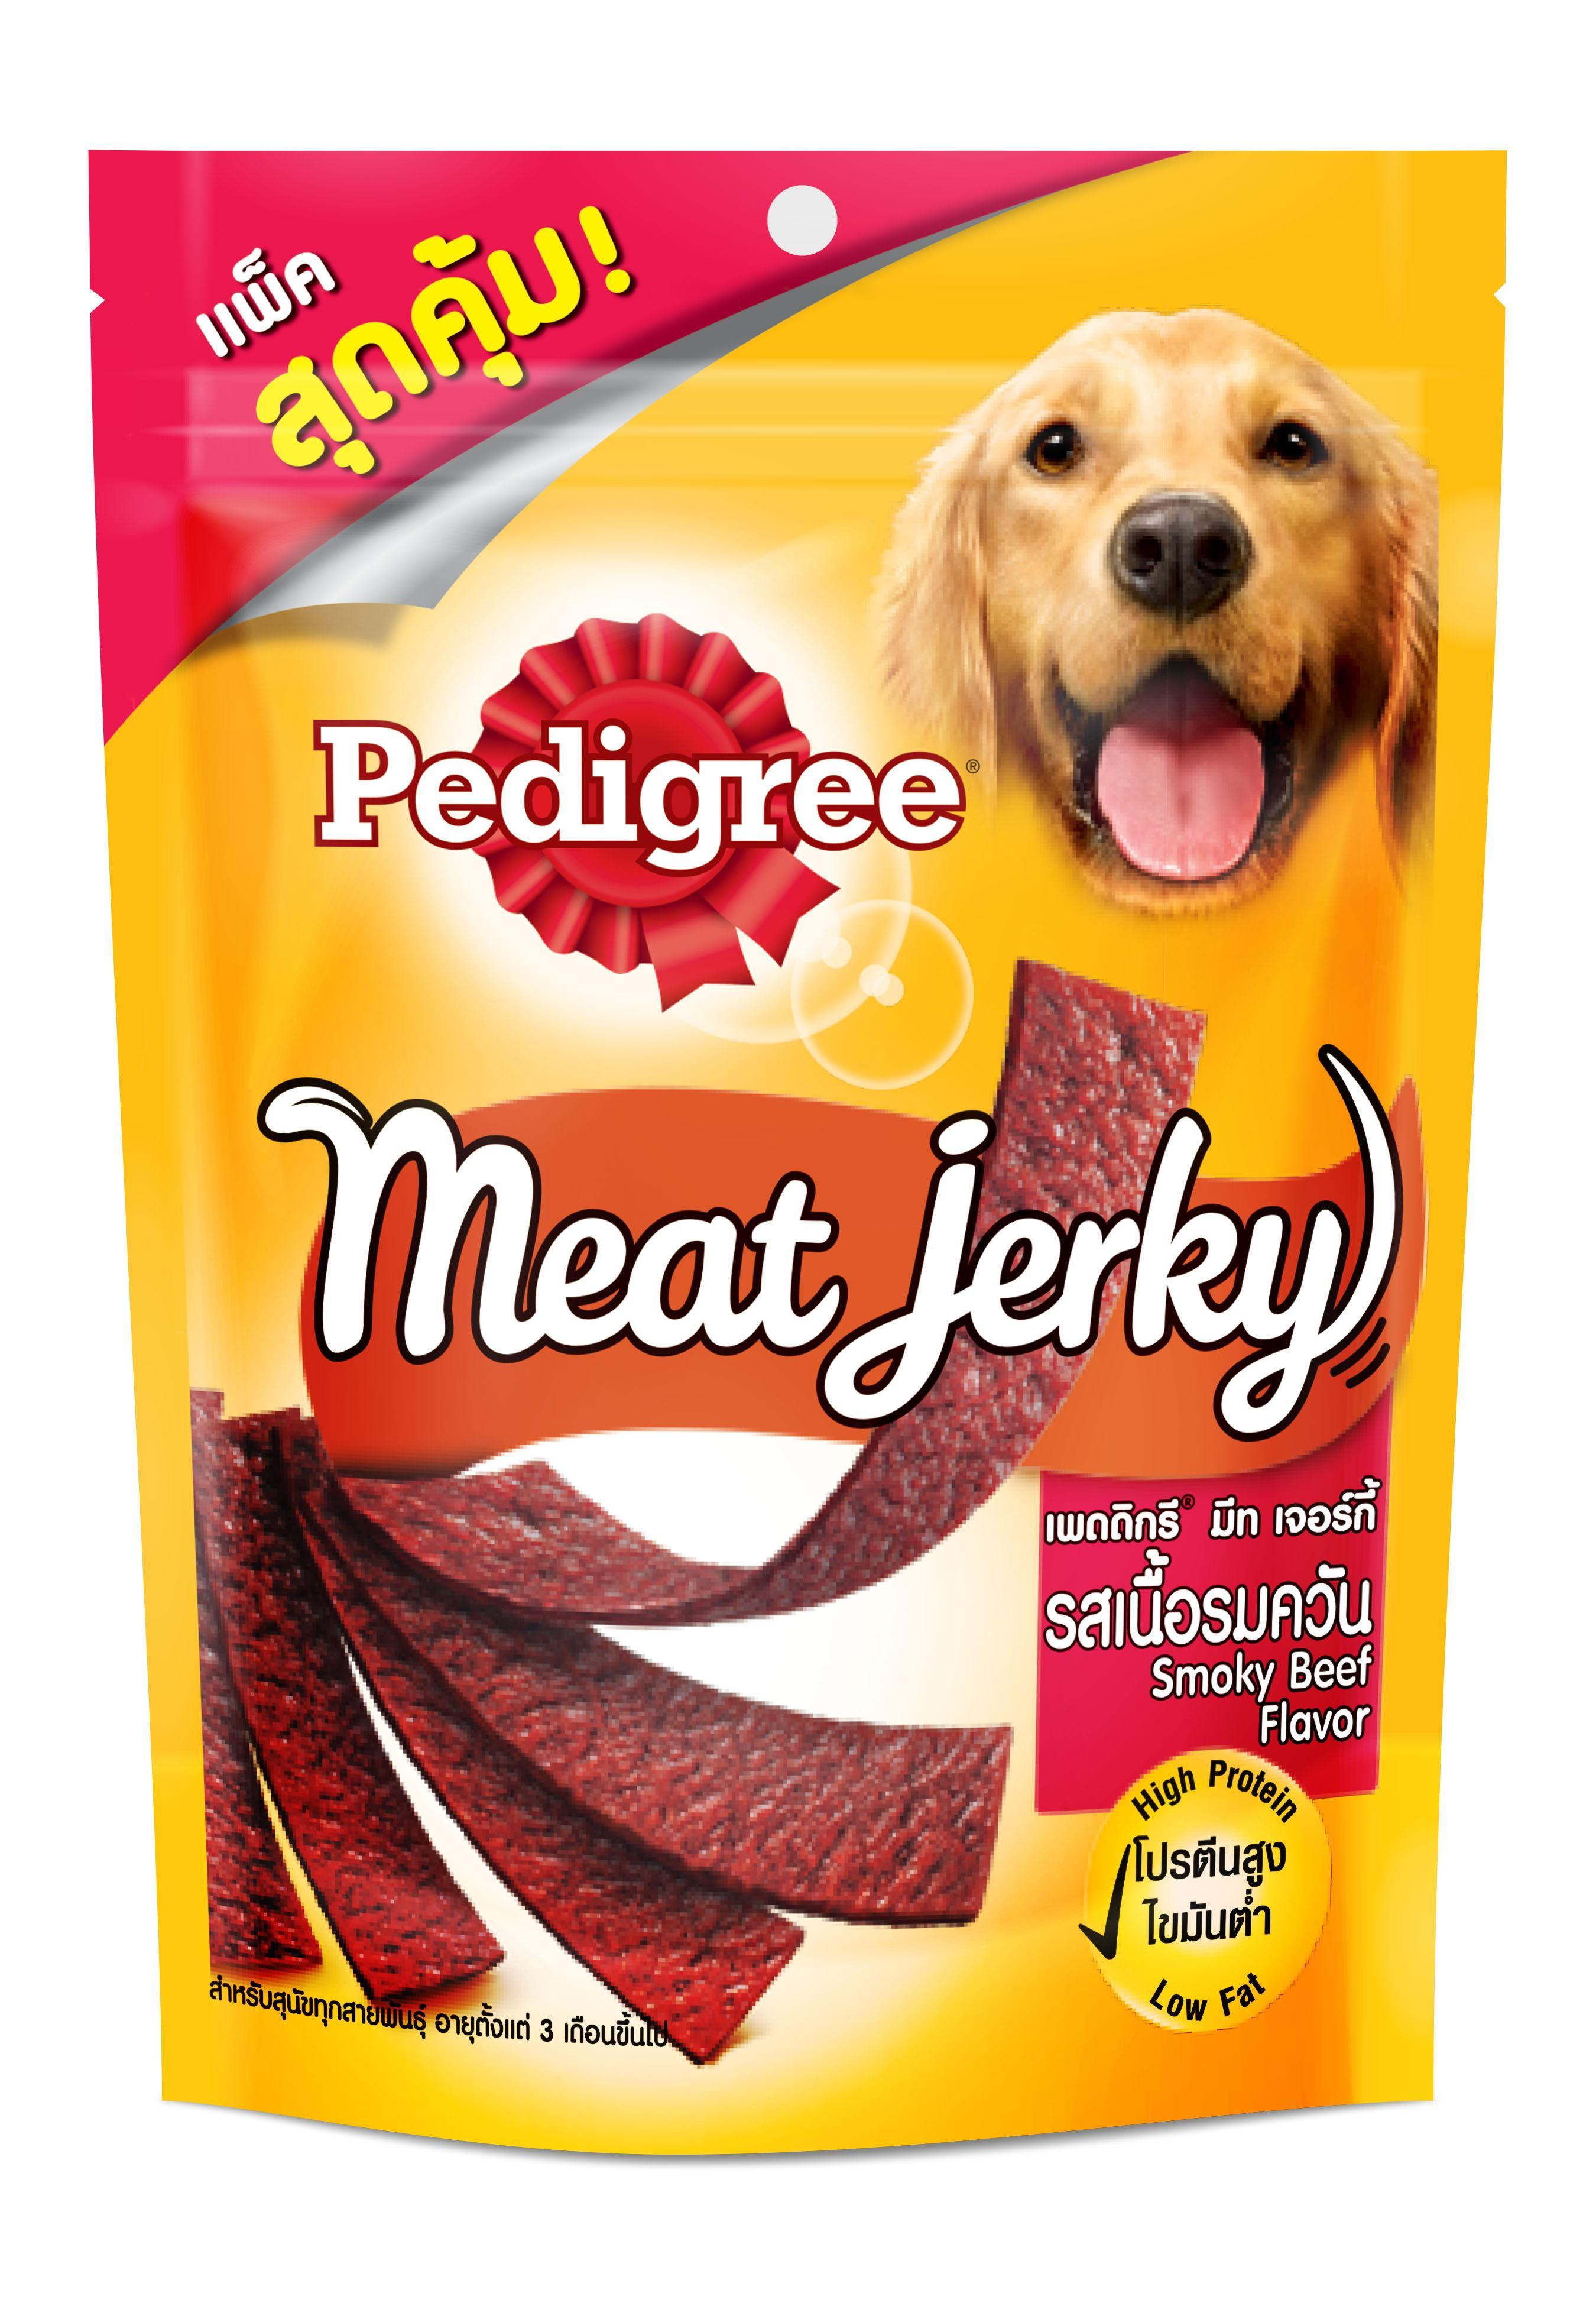 Pedigree Meat Jerky Strap Value Pack Makanan Anjing Rasa Smokey Beef 300gr By Pedigree Official Store.